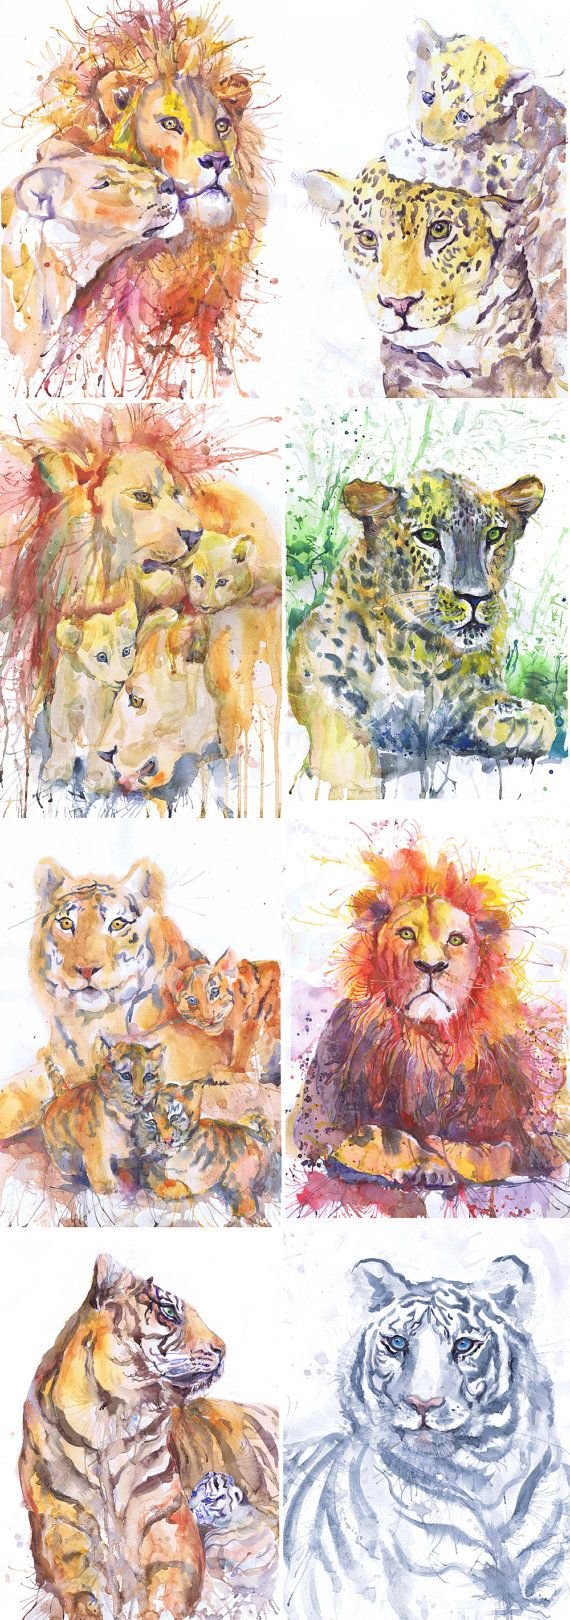 ACEO Artist Trading Cards Art Prints Watercolor Painting Wild Cats Animals ATC Giclee Big Cat Set of 9 Signed Collectible Card Watercolourr  Set of 8